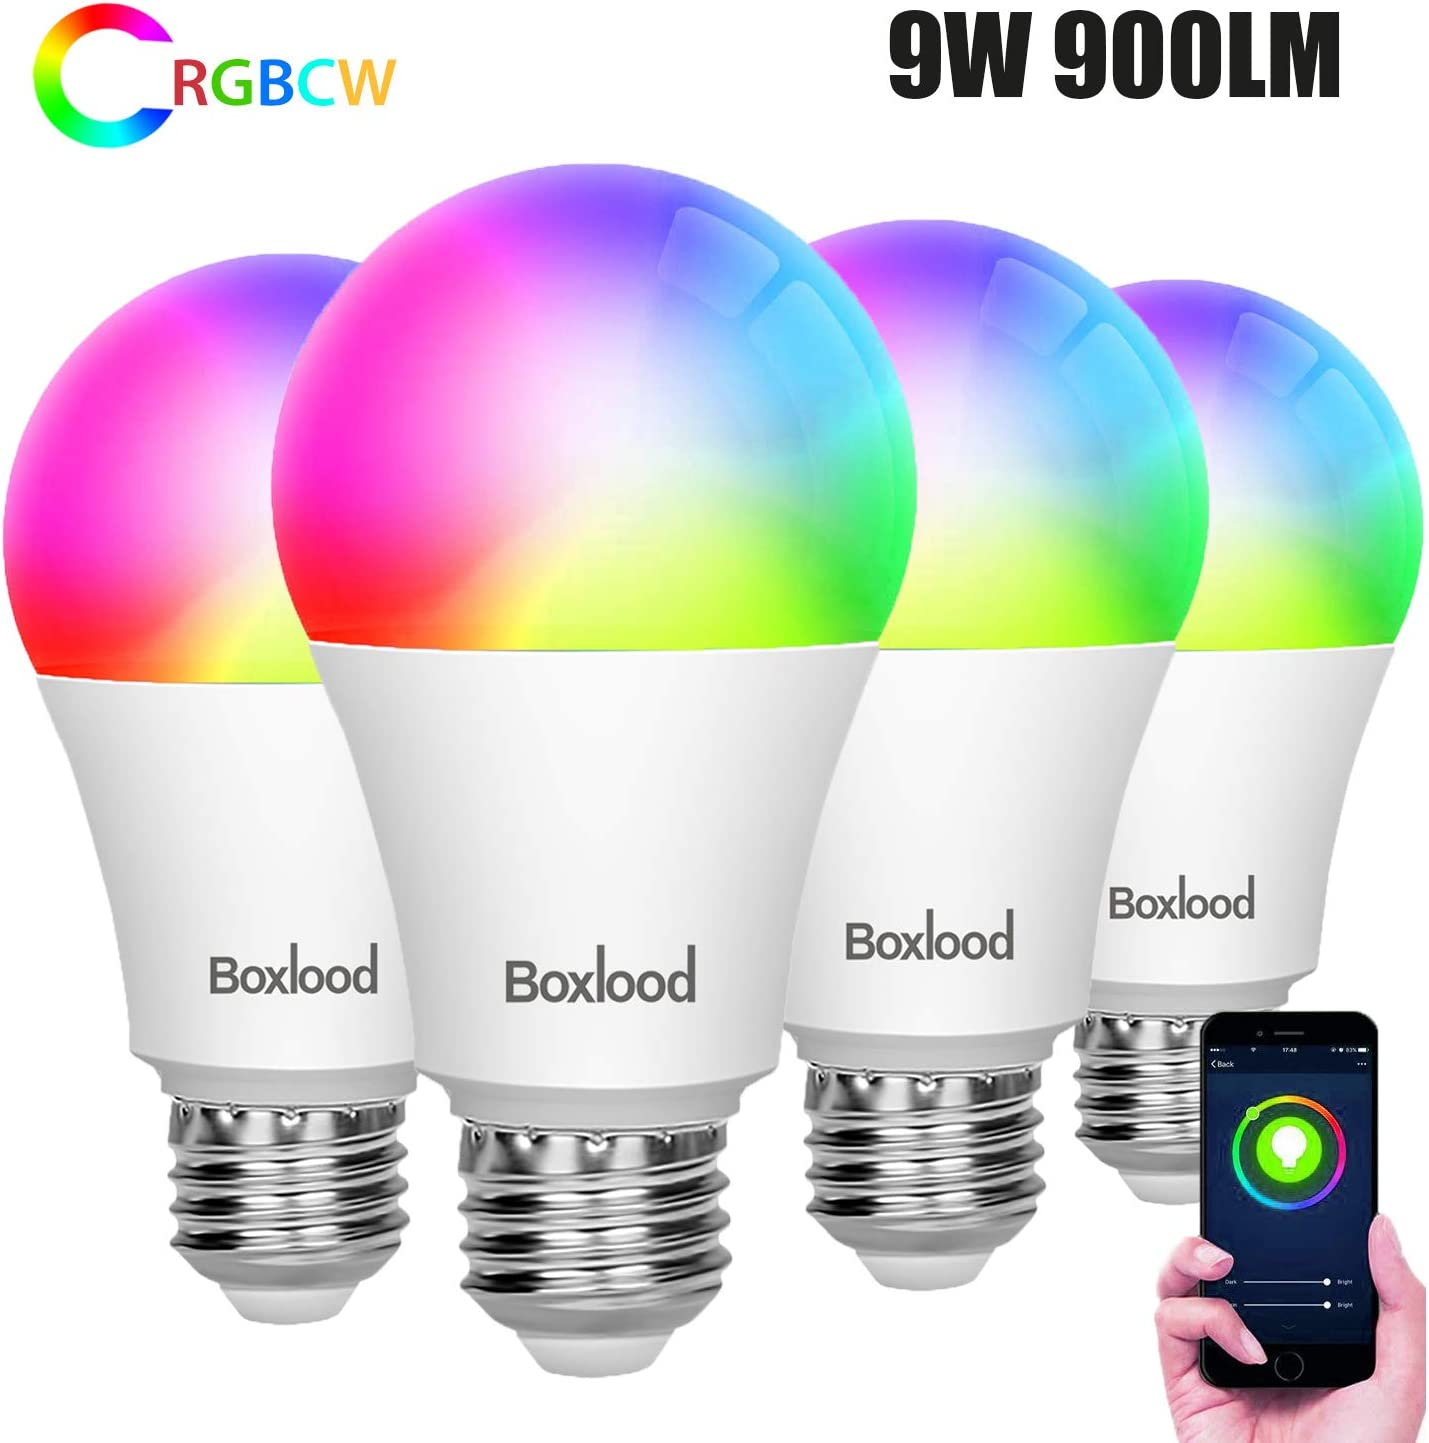 Free Amazon Promo Code 2020 for Smart WiFi Light Bulbs